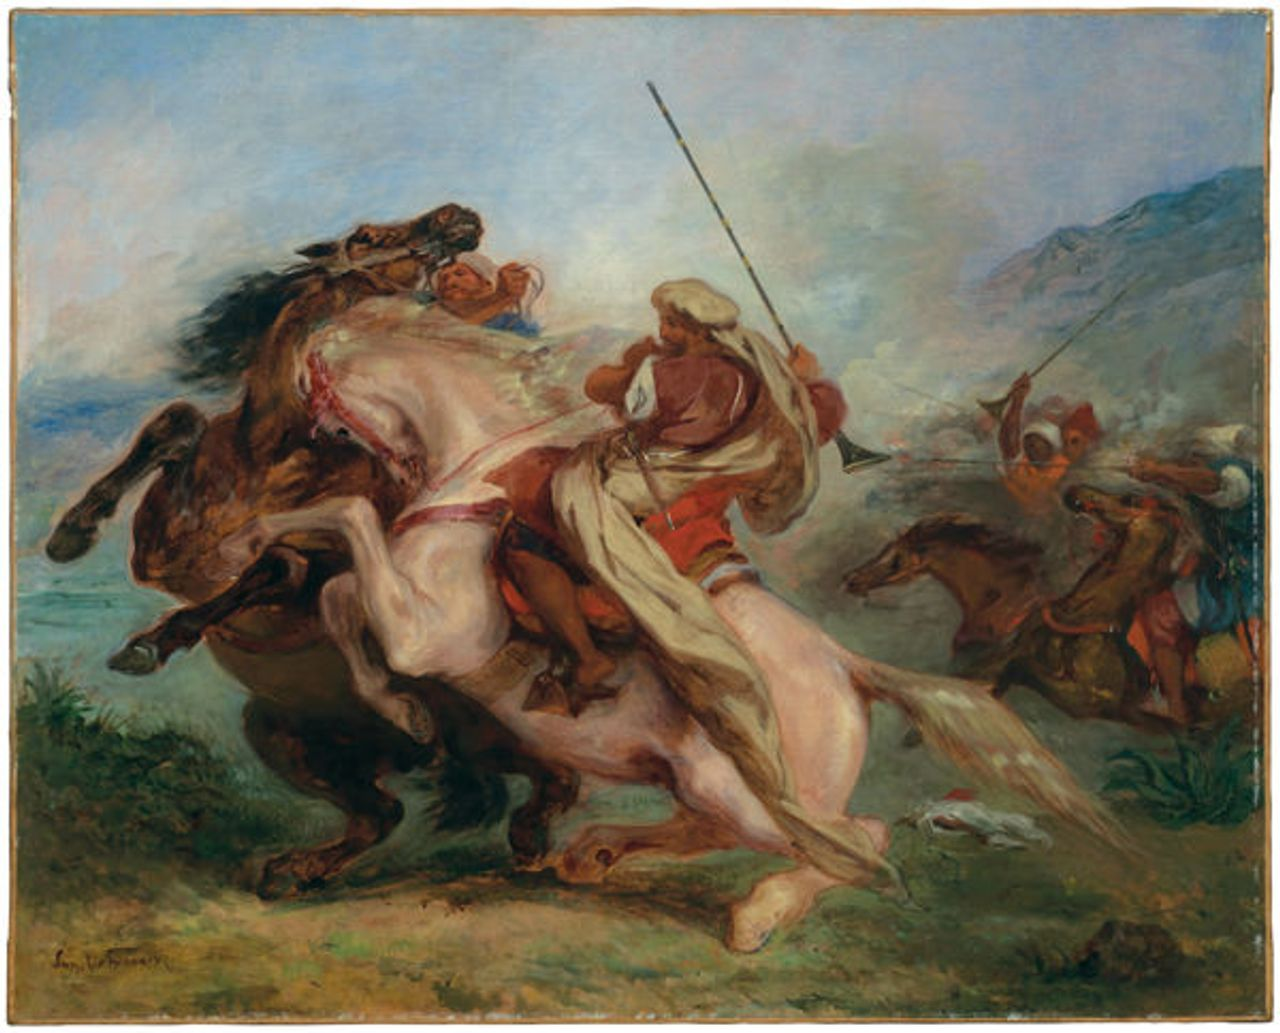 Collision of Arab Horsemen, 1833-34, Delacroix painting